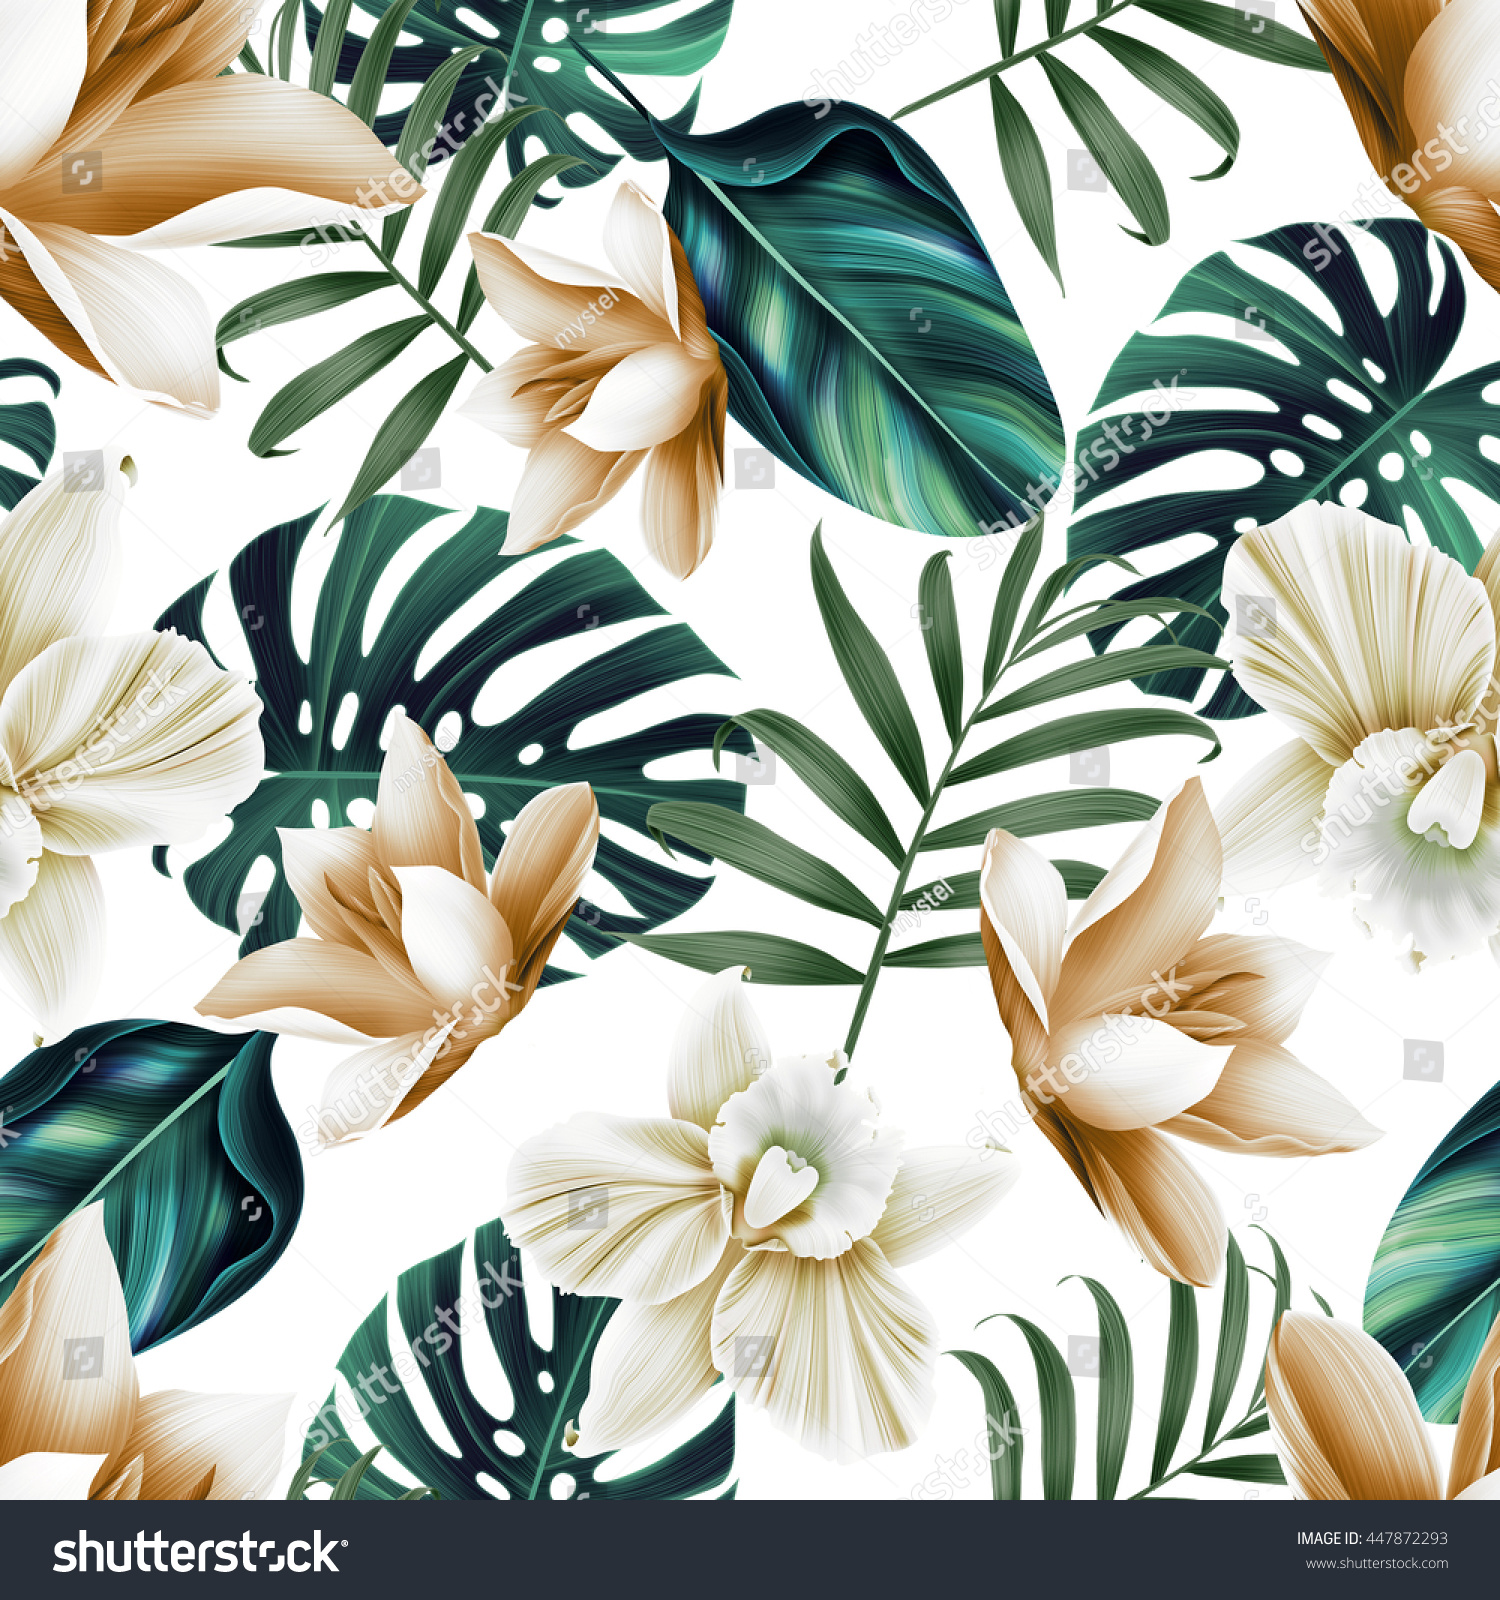 Seamless Tropical Flower Plant Leaf Pattern Stock ...